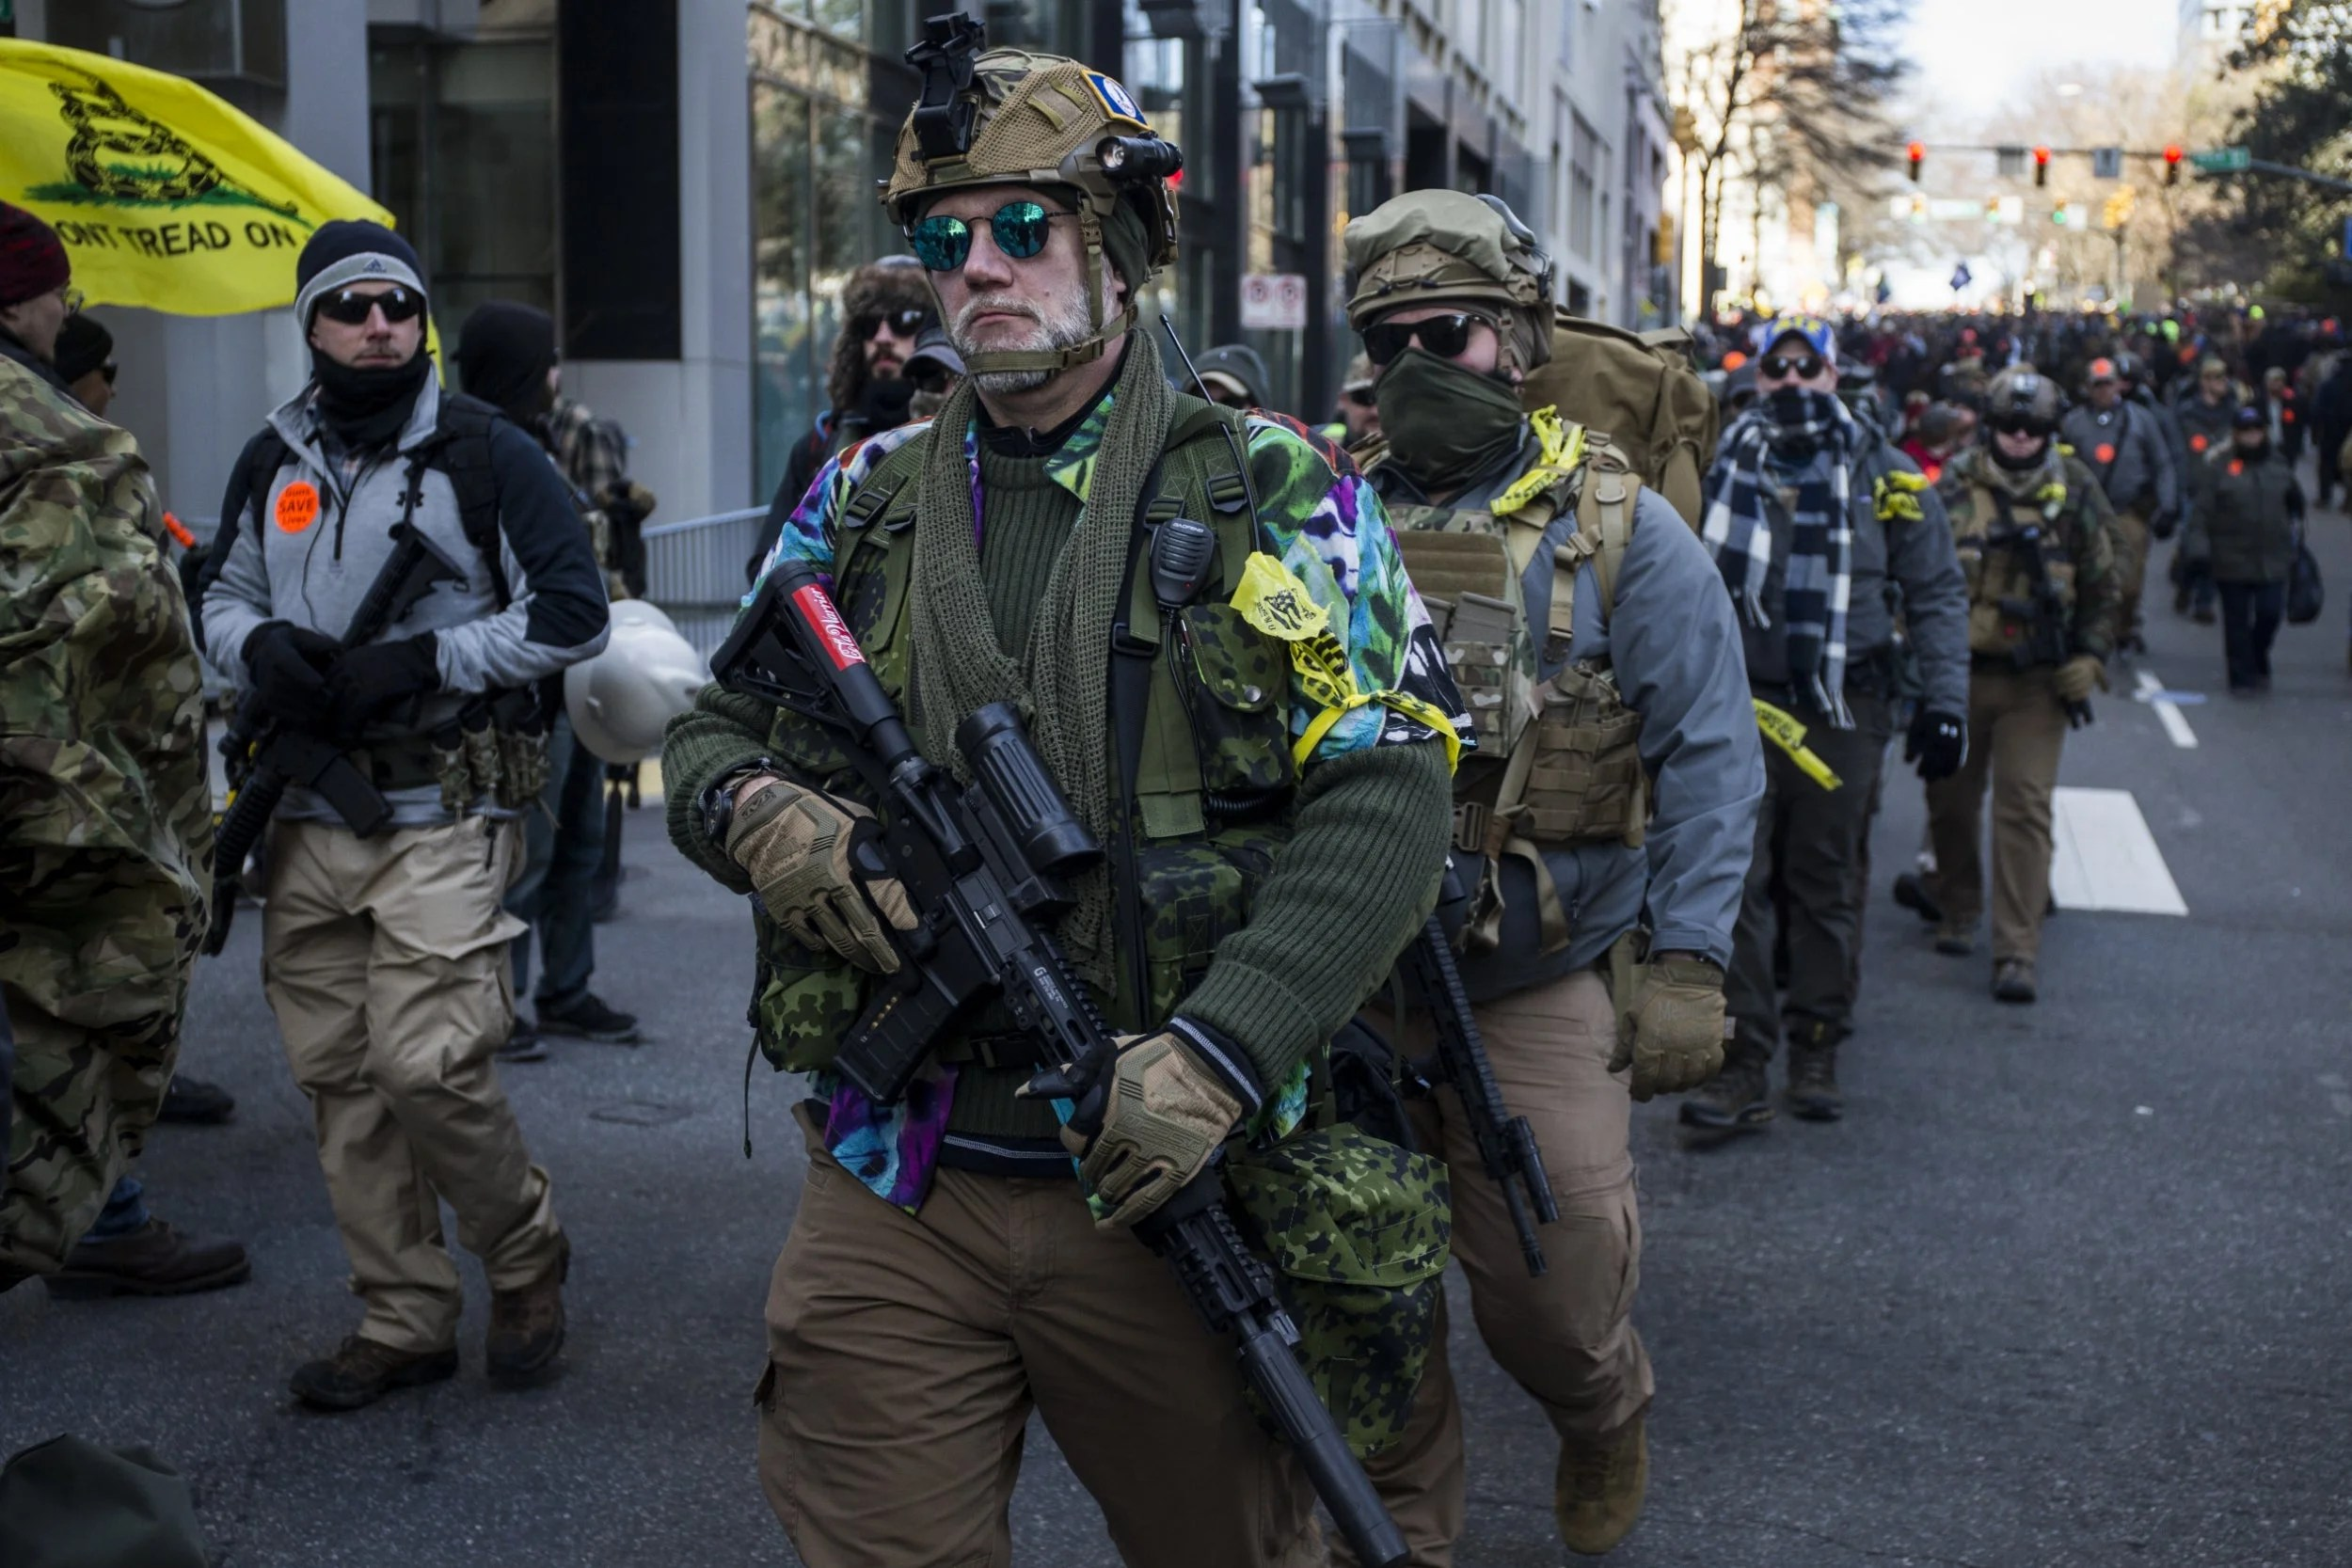 Weapons rally: tense protests and plenty of ammunition for Trump in Virginia